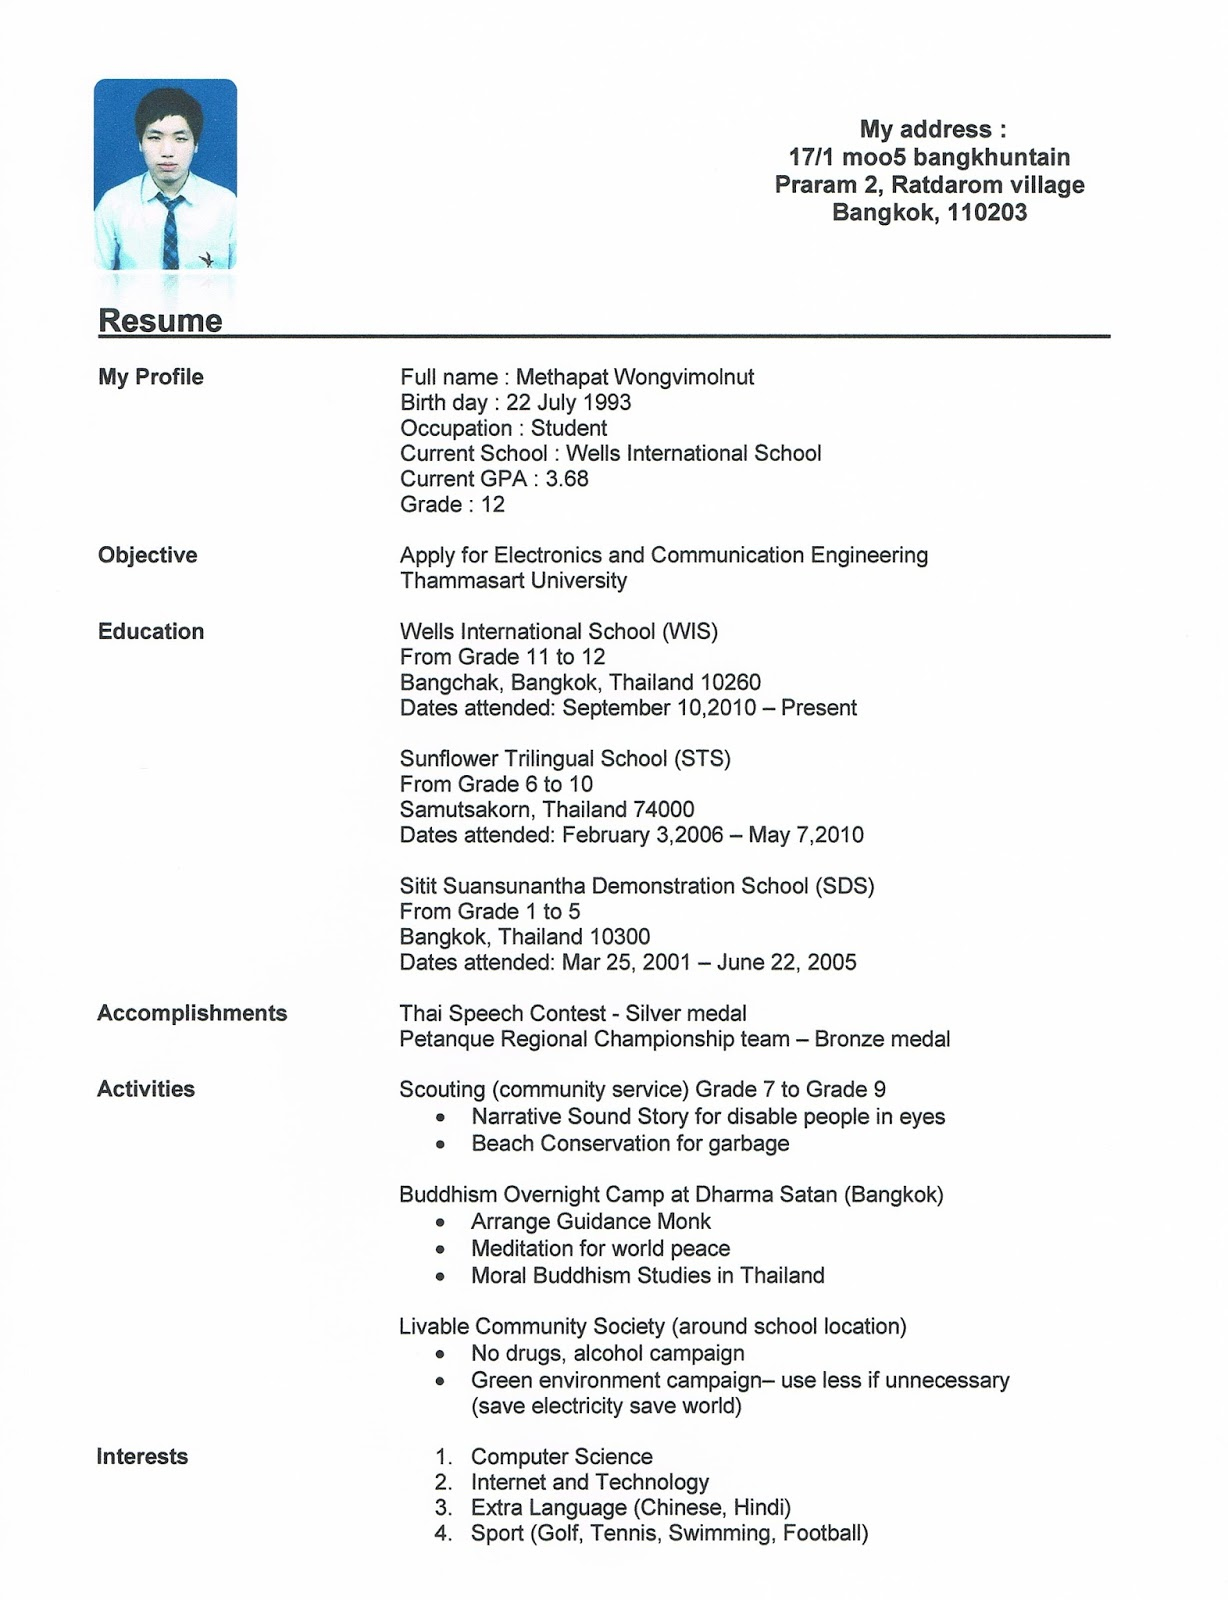 Resume without college degree examples